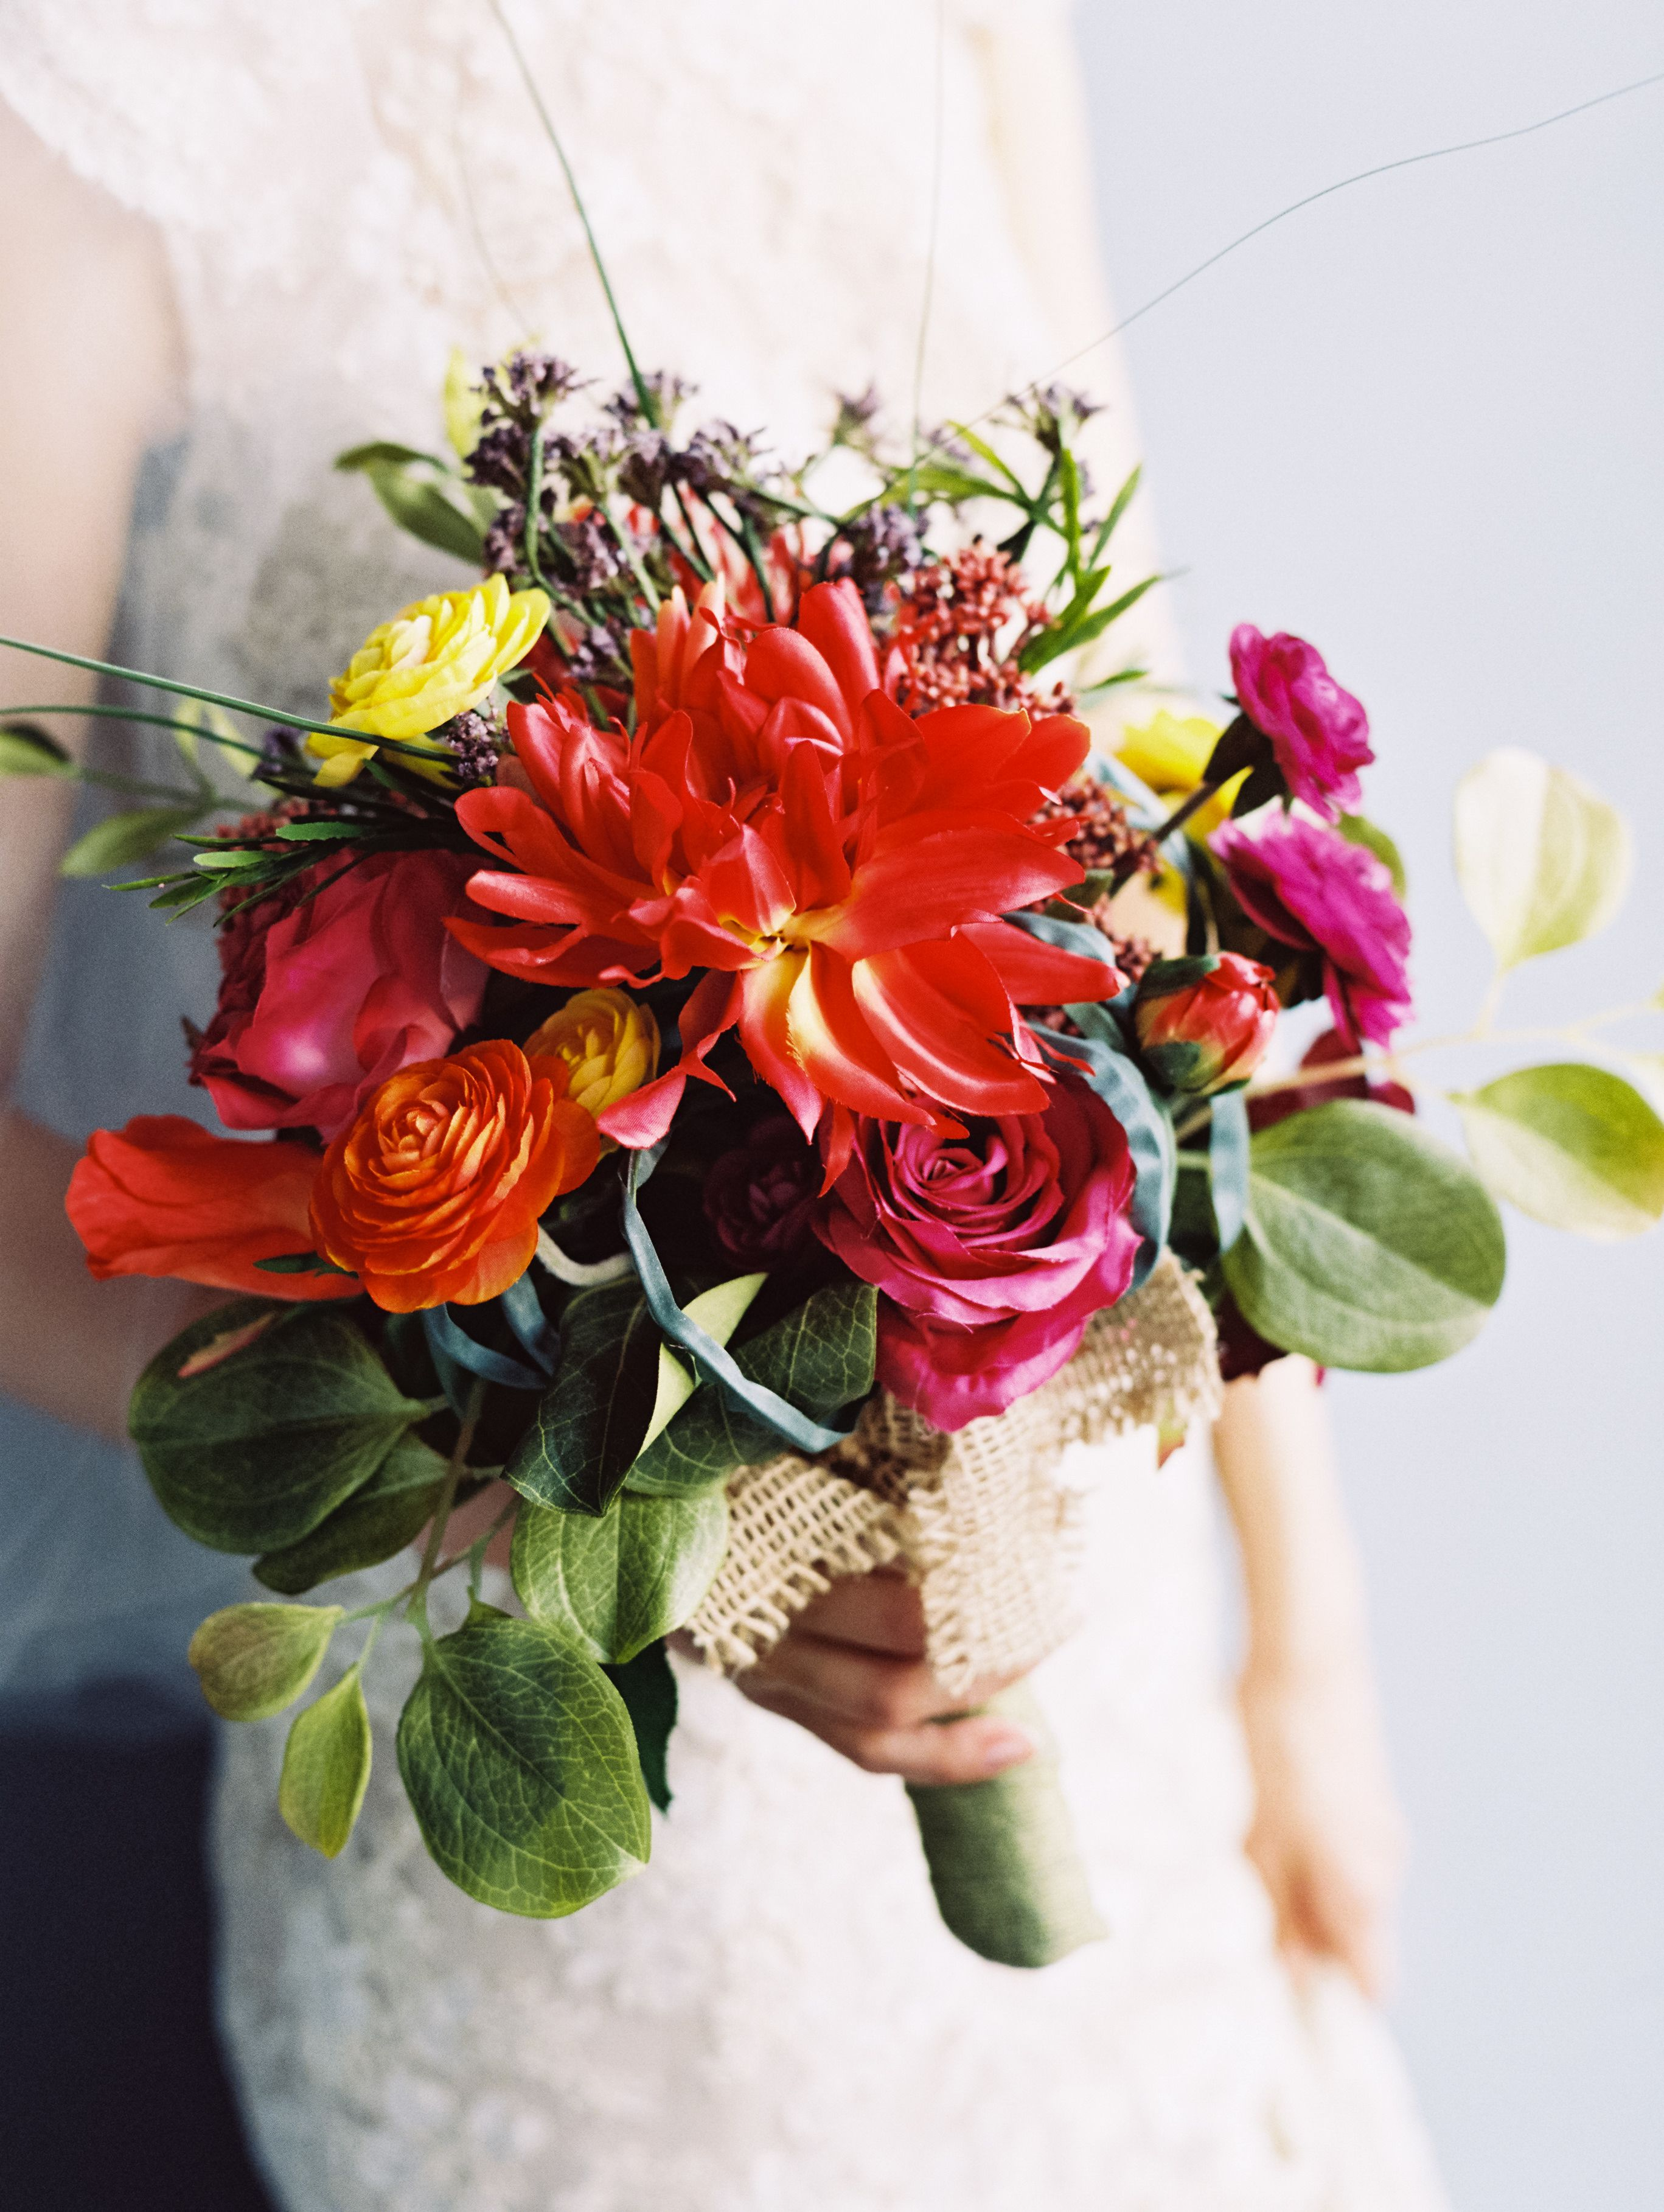 The Tropical Bouquet Is A Chic Destination Wedding Arrangement Of